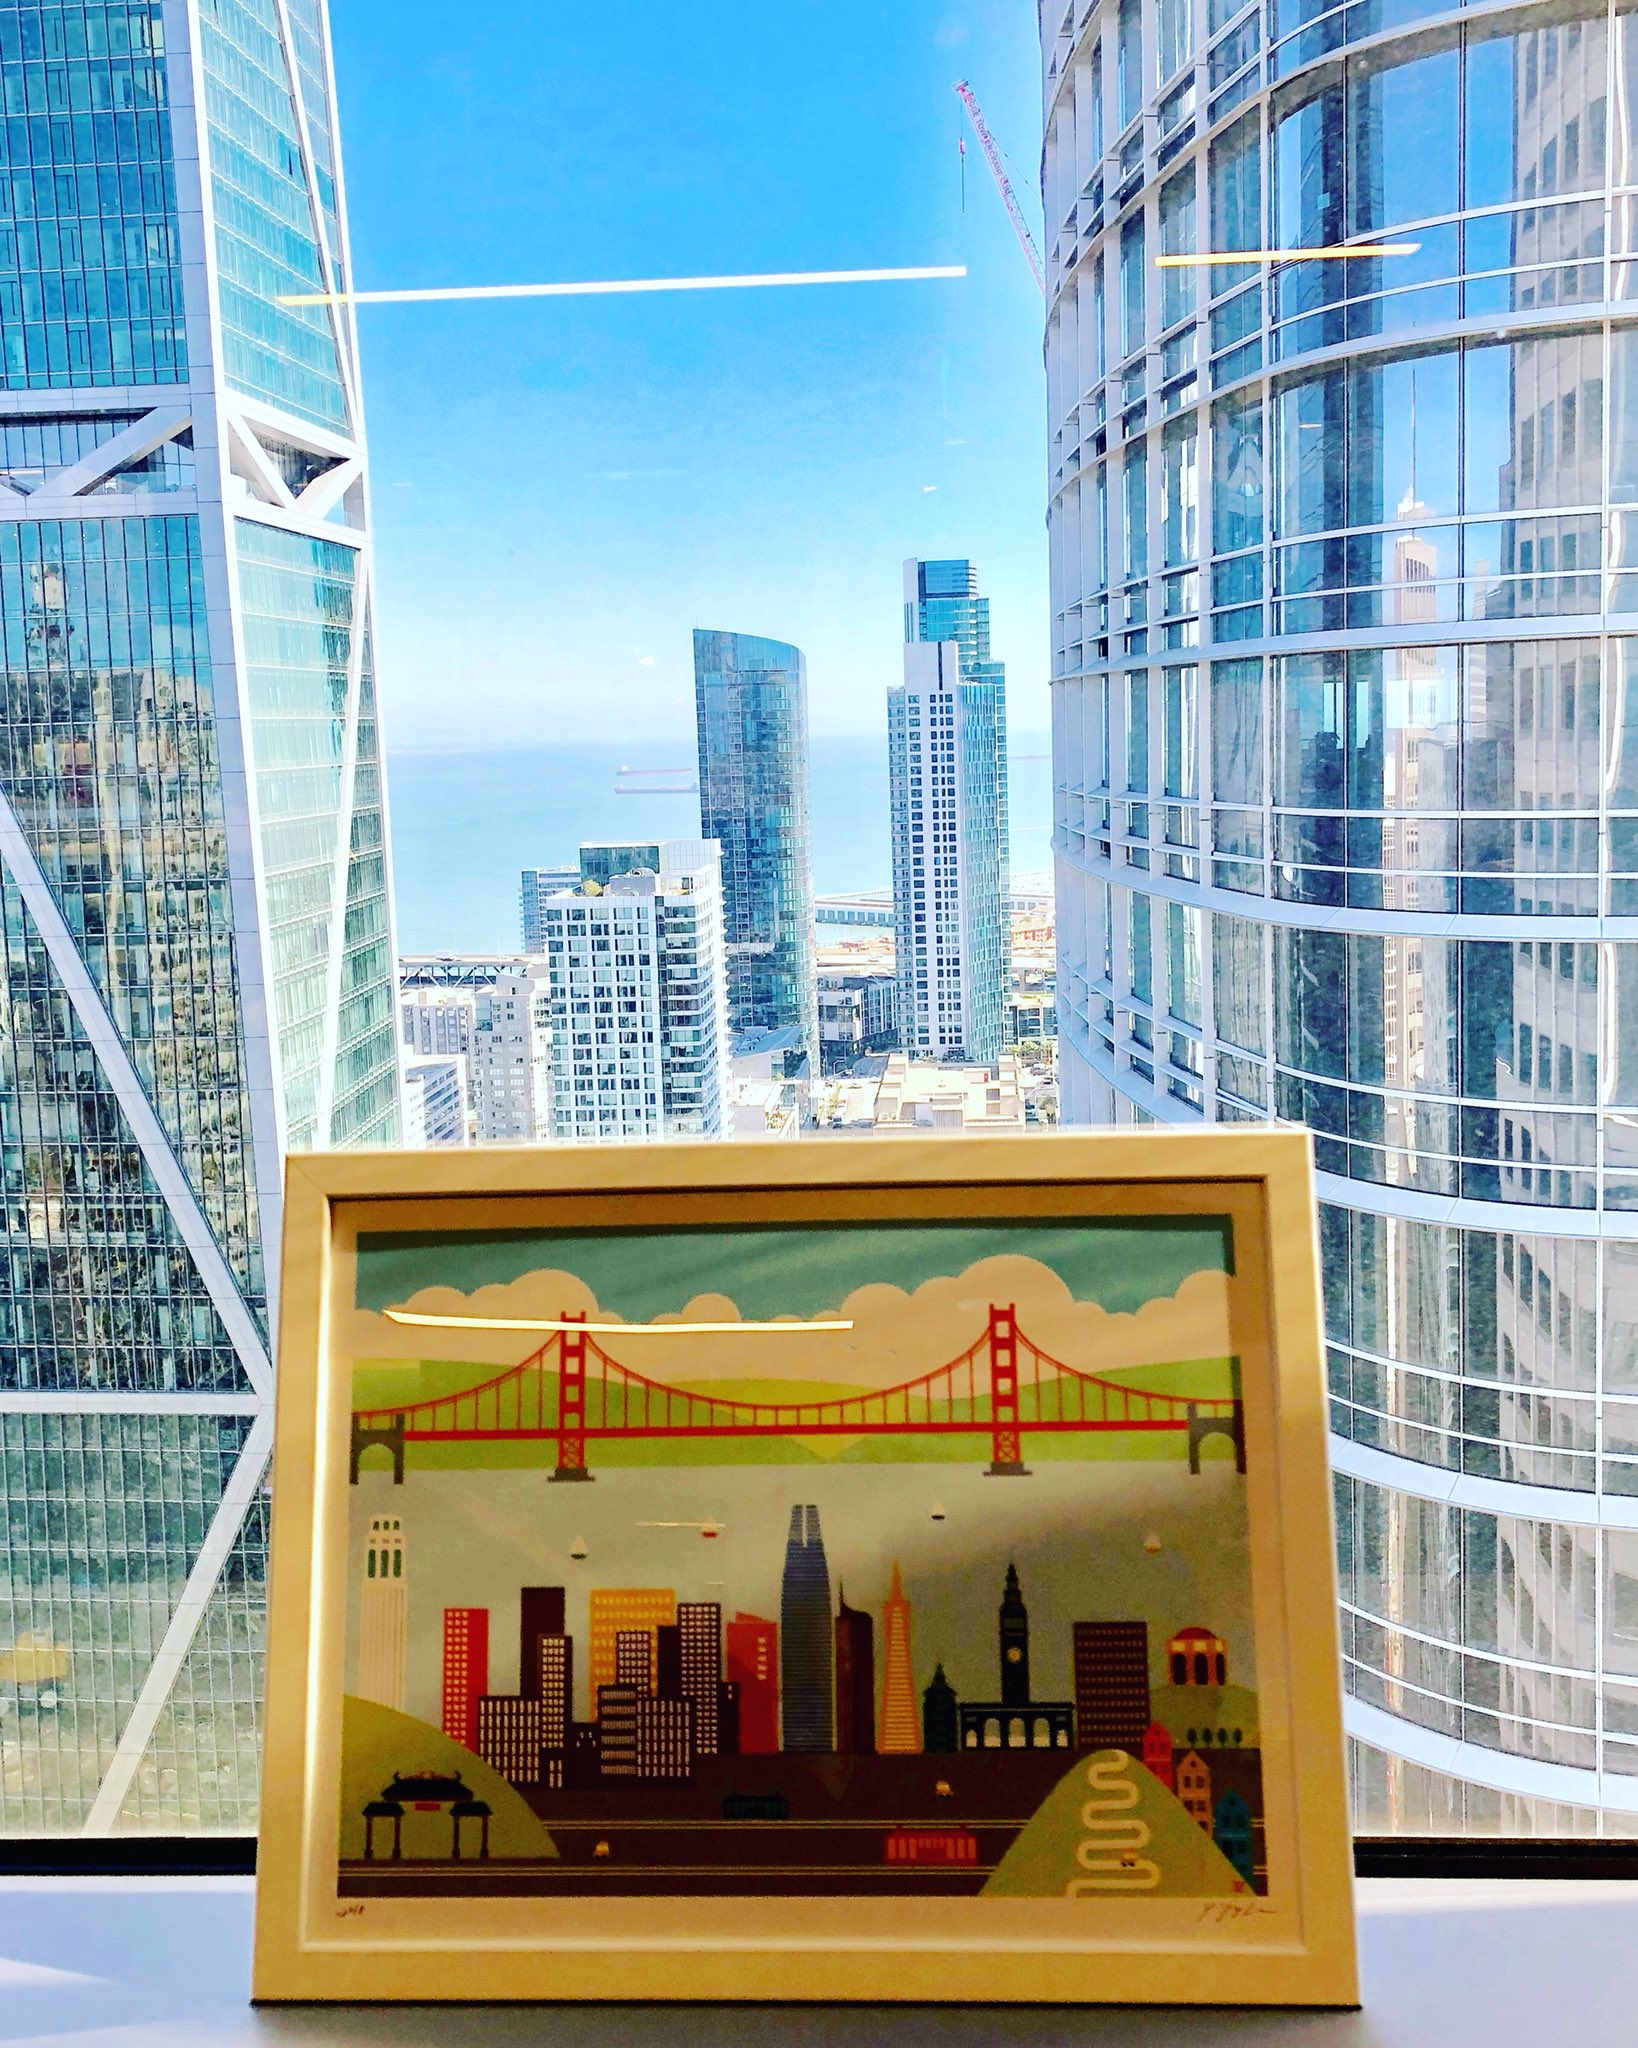 Found the perfect spot for the #sanfrancisco art work created by amazing, creative and happy @yiyinglu Thank you @salesforce for bringing such inspiring #codame artists to #cocreate with us ART 💜 TECH + 🥟🥟🥟 https://t.co/vYetr2qN9r